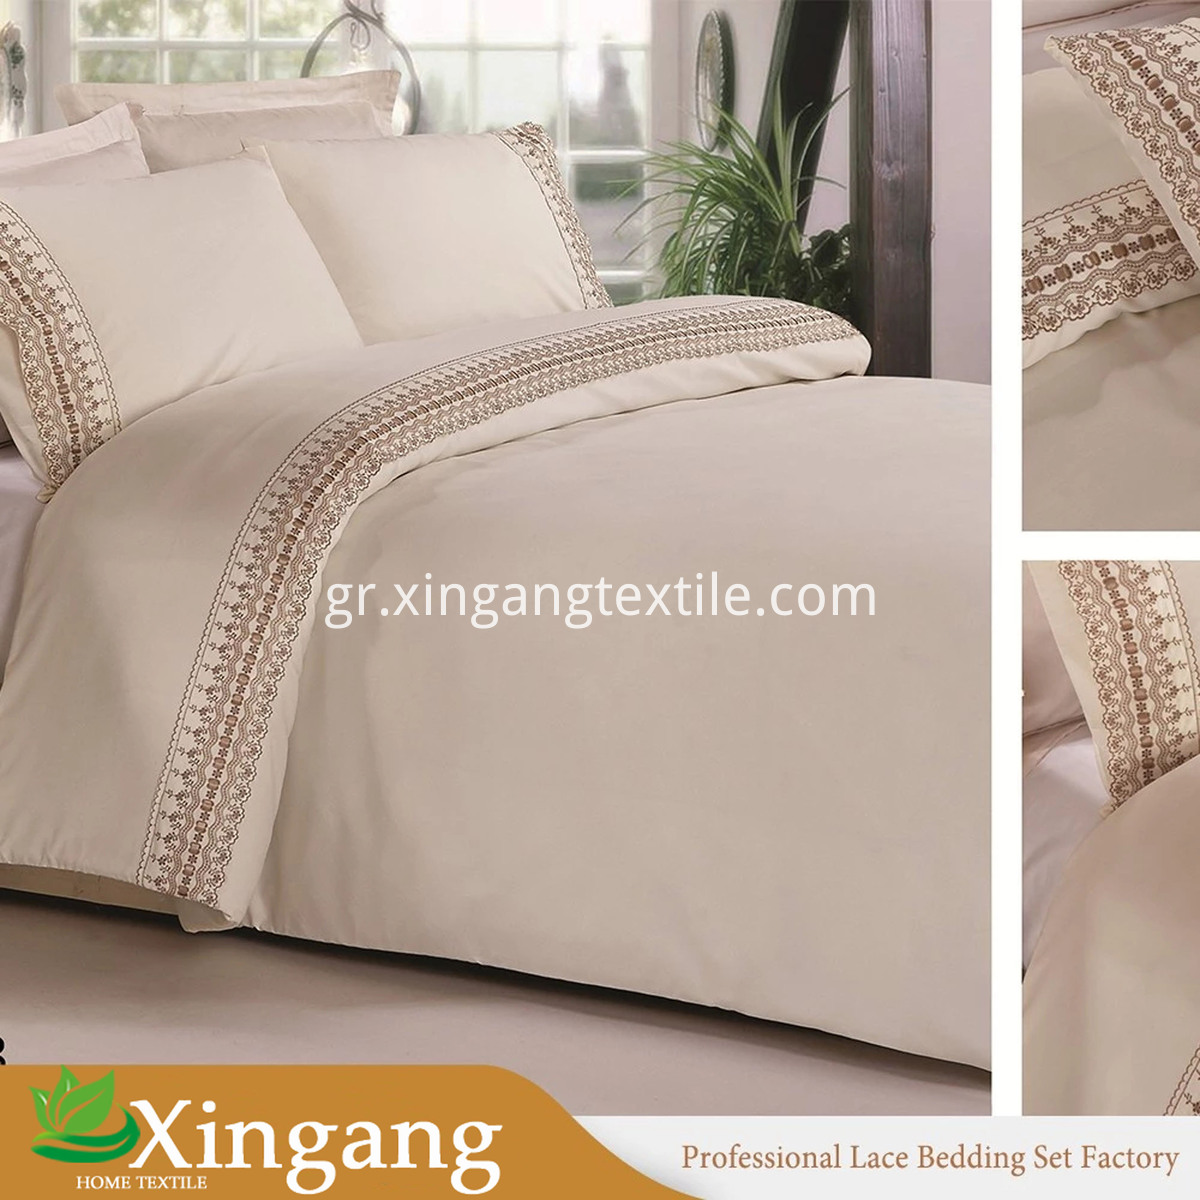 LACE BEDDING (4)